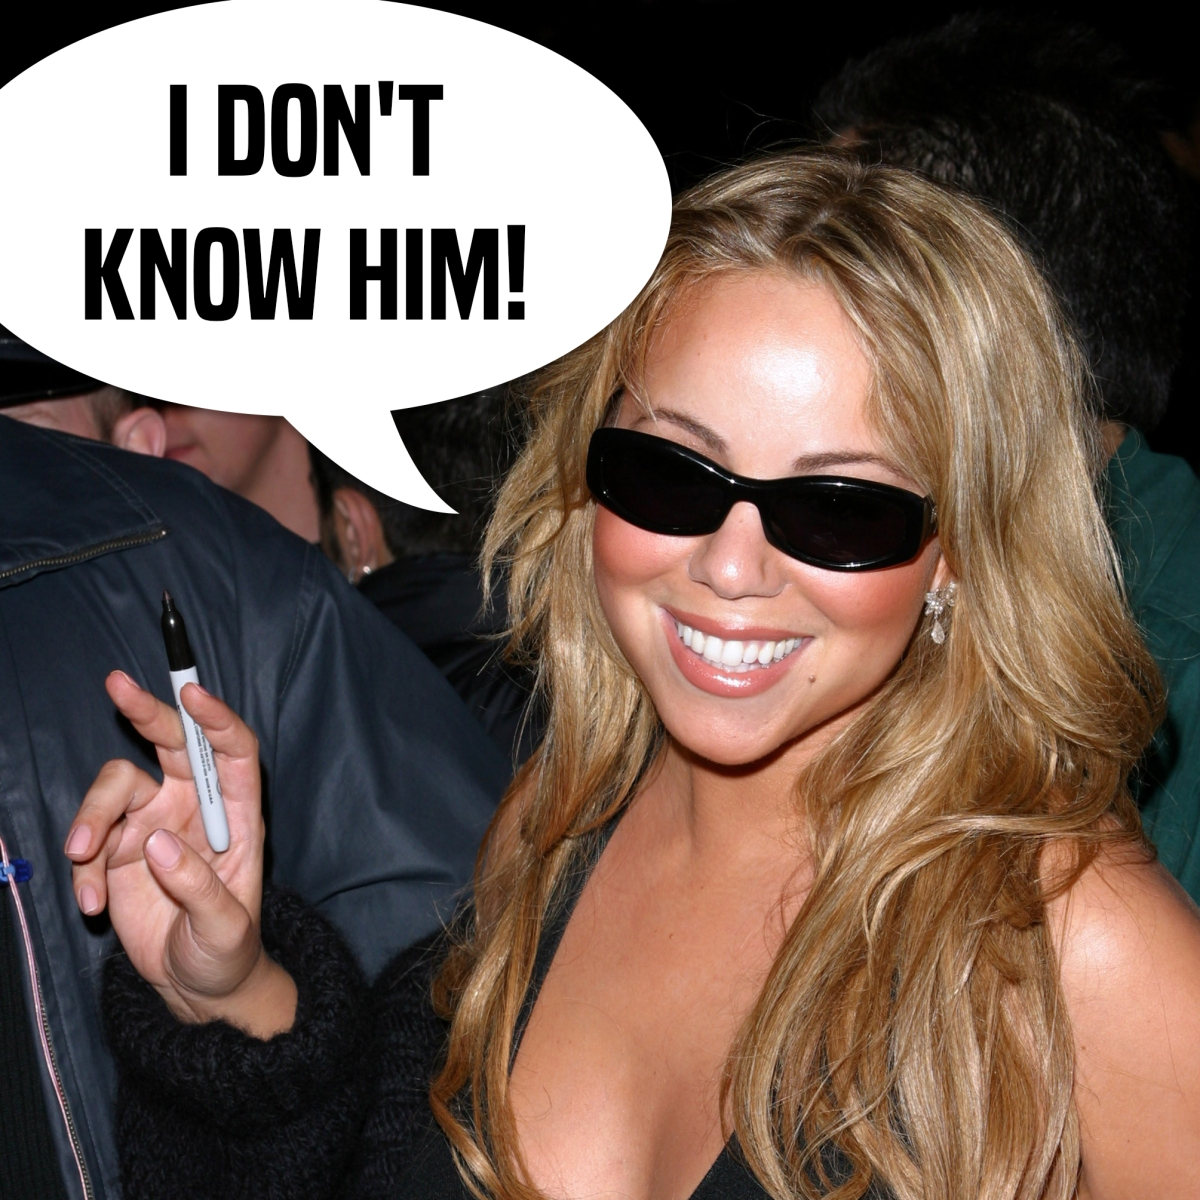 Eminem and Mariah Carey: A Timeline of Every Diss They've Made